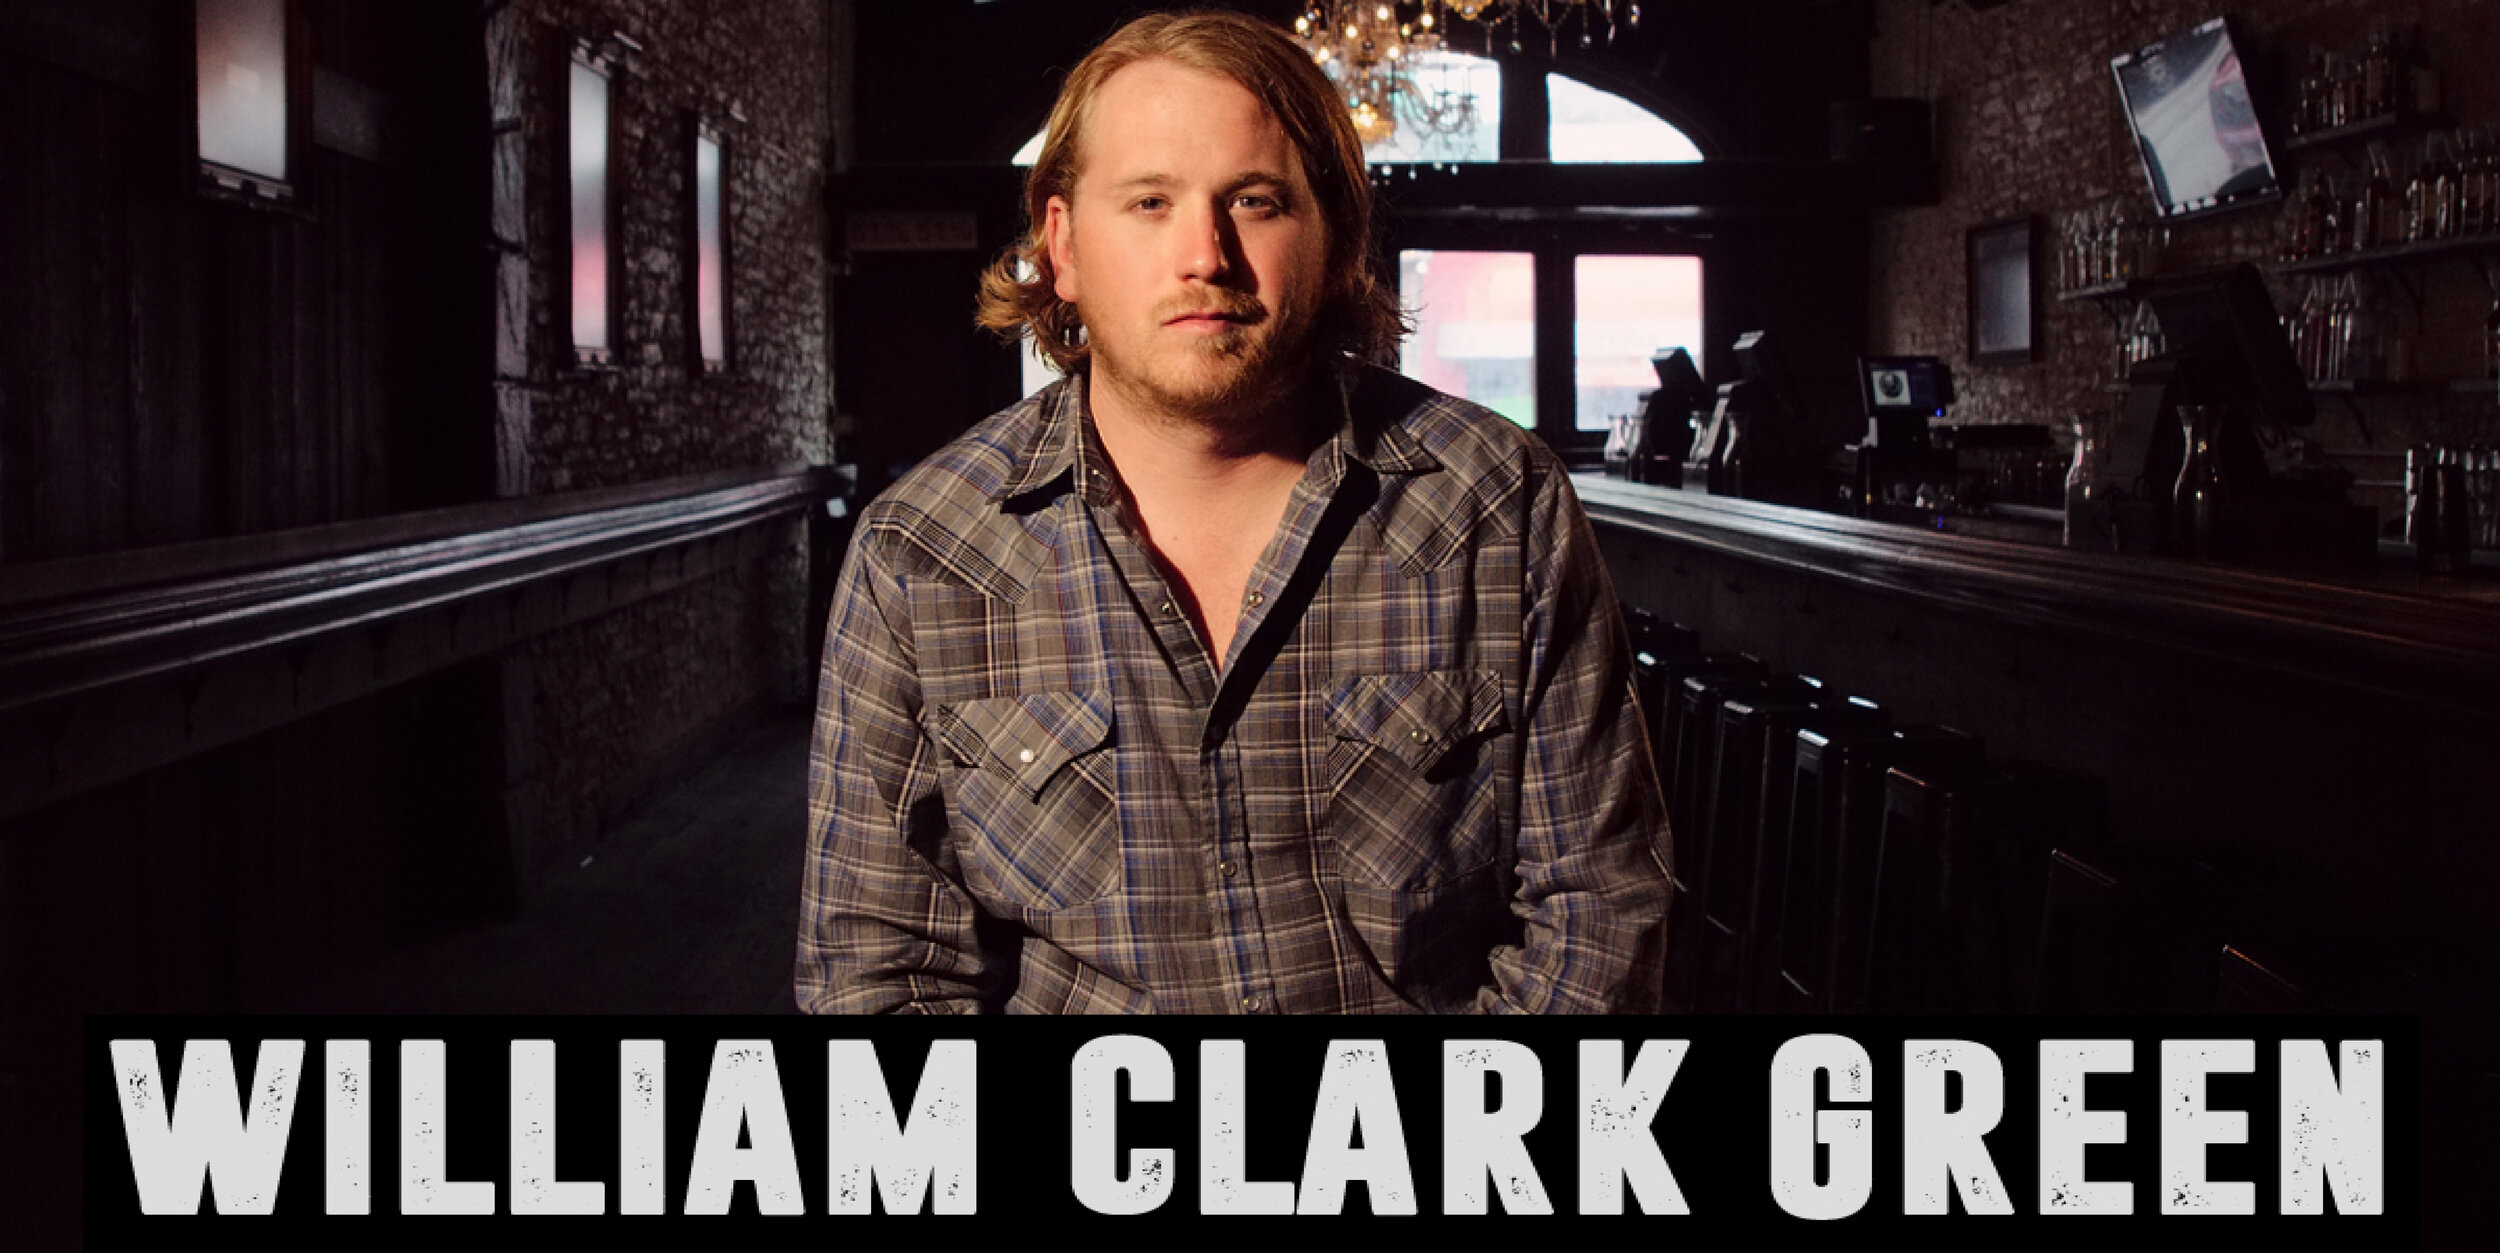 William Clark Green set to make his Warehouse debut Thursday Night October 10th!